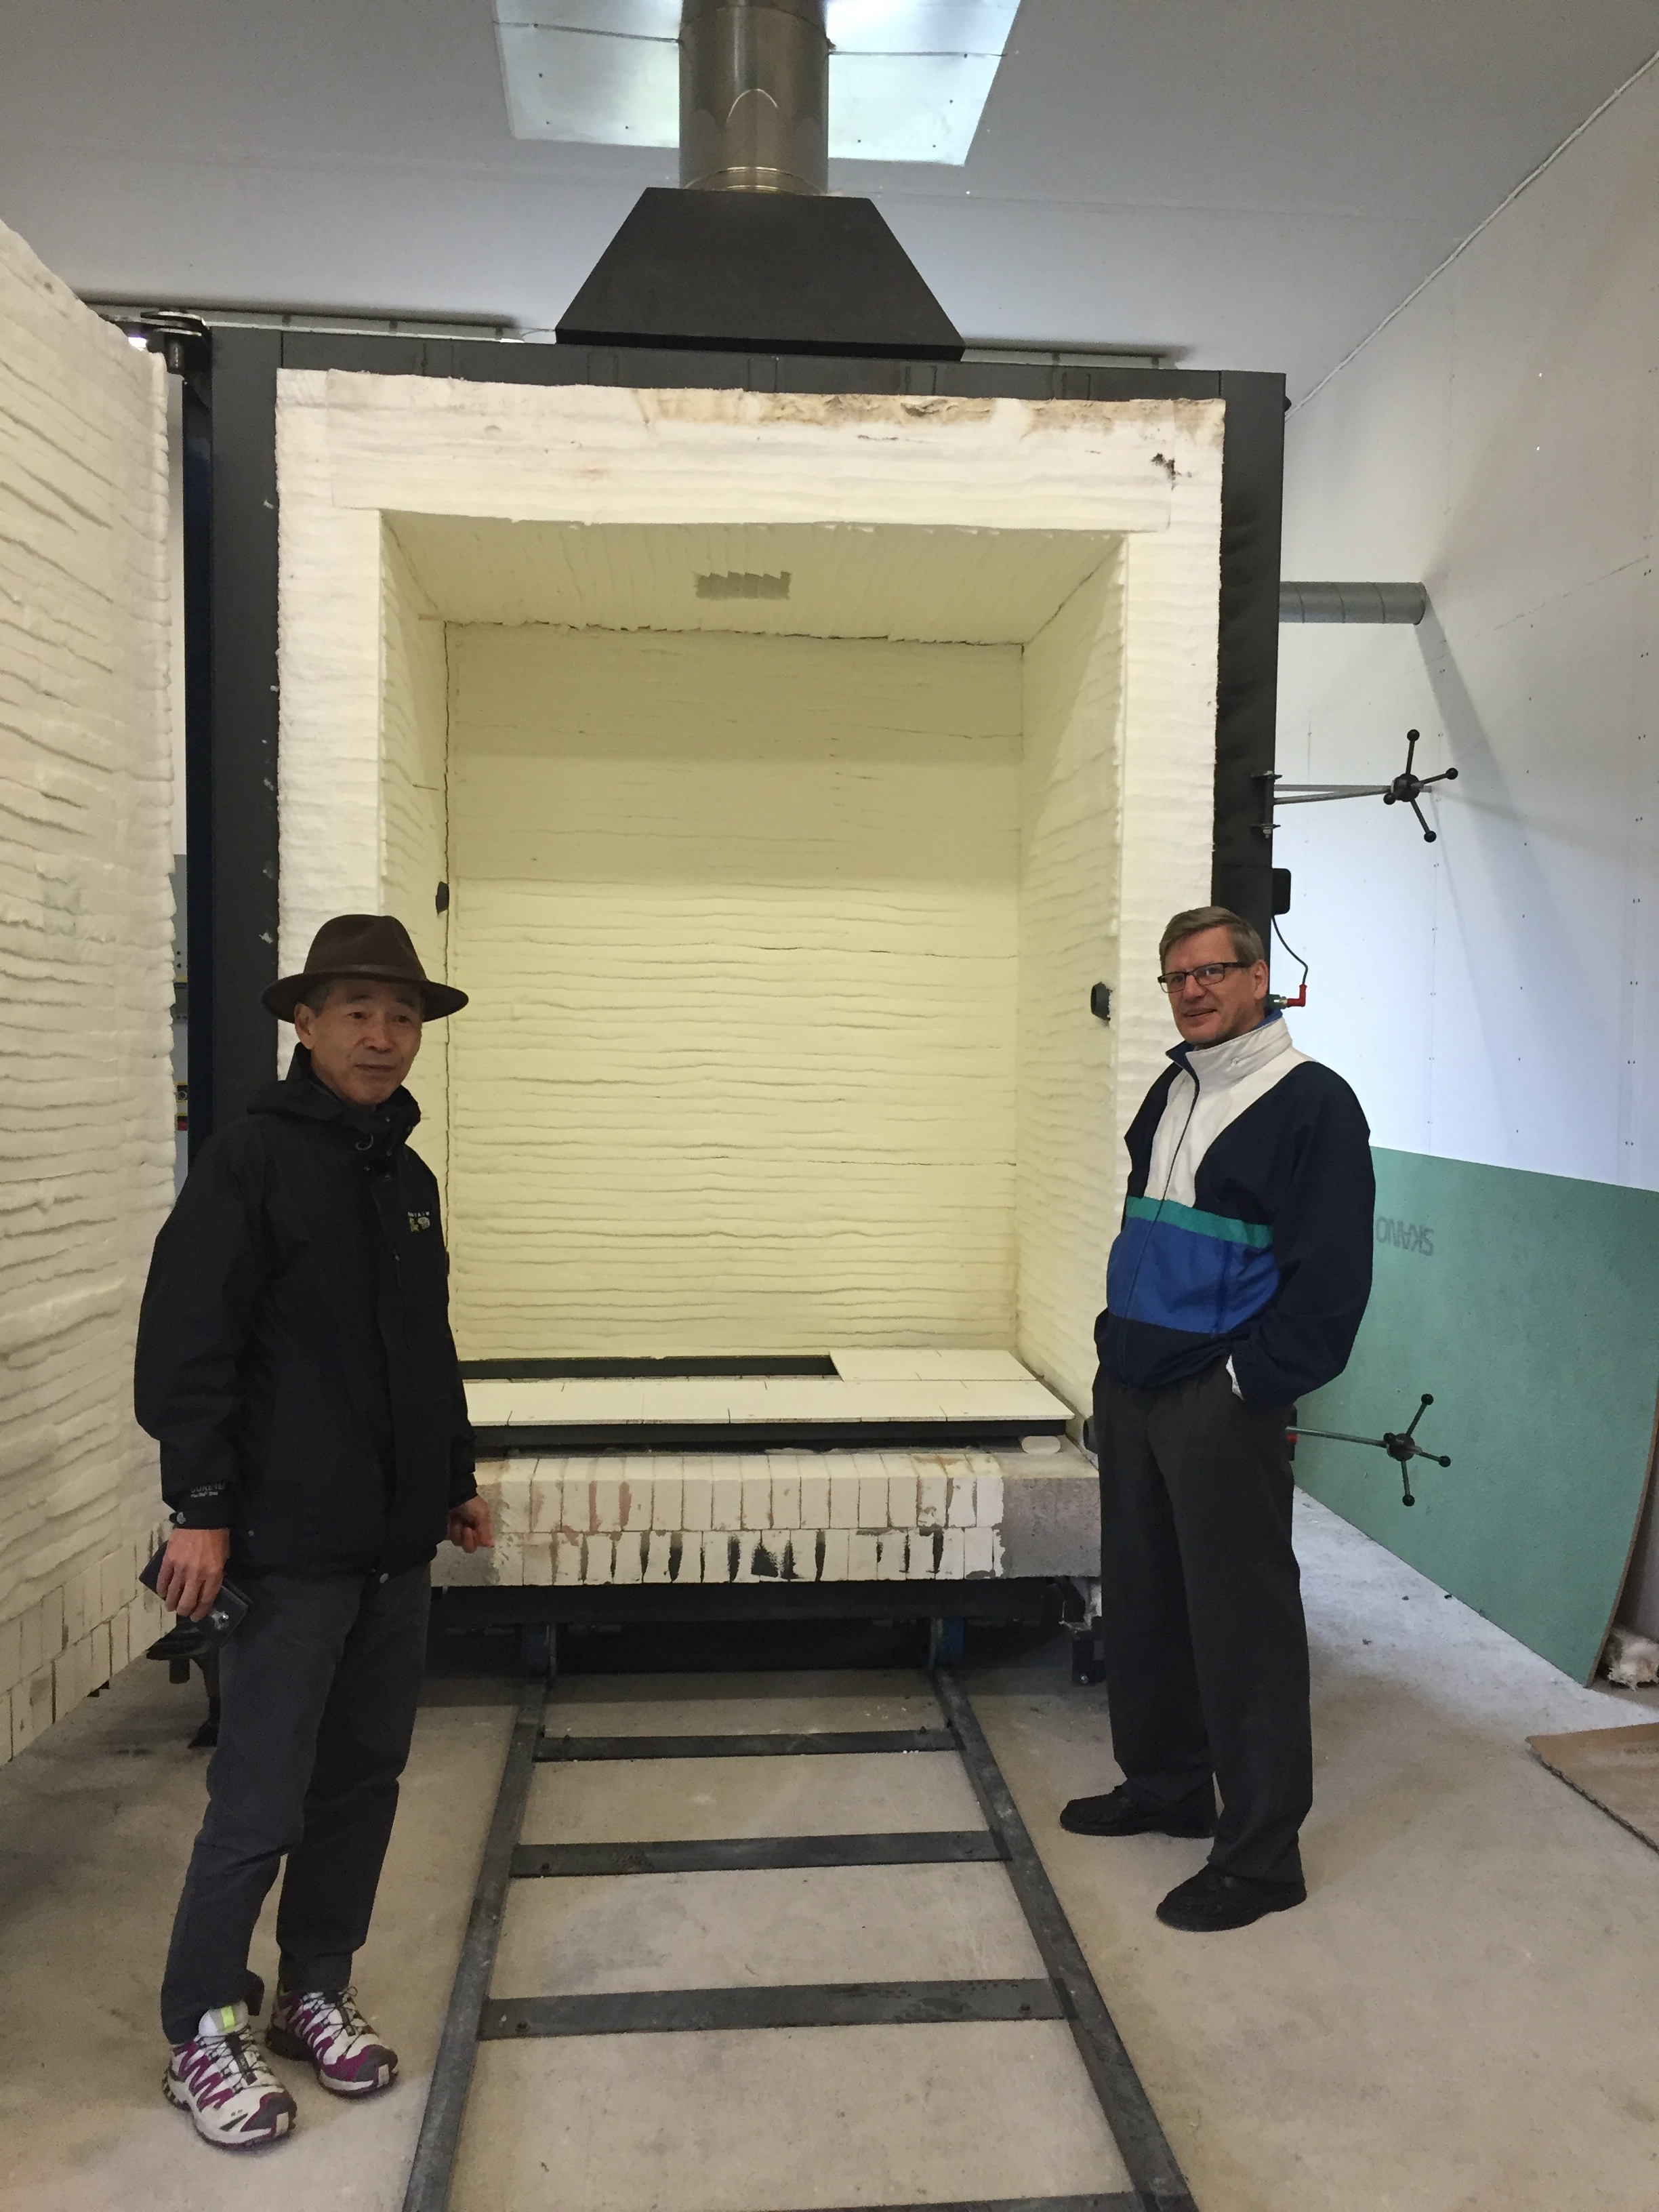 Suku Park and Reijo Lantto with the new kiln at the Arctic Ceramic centre